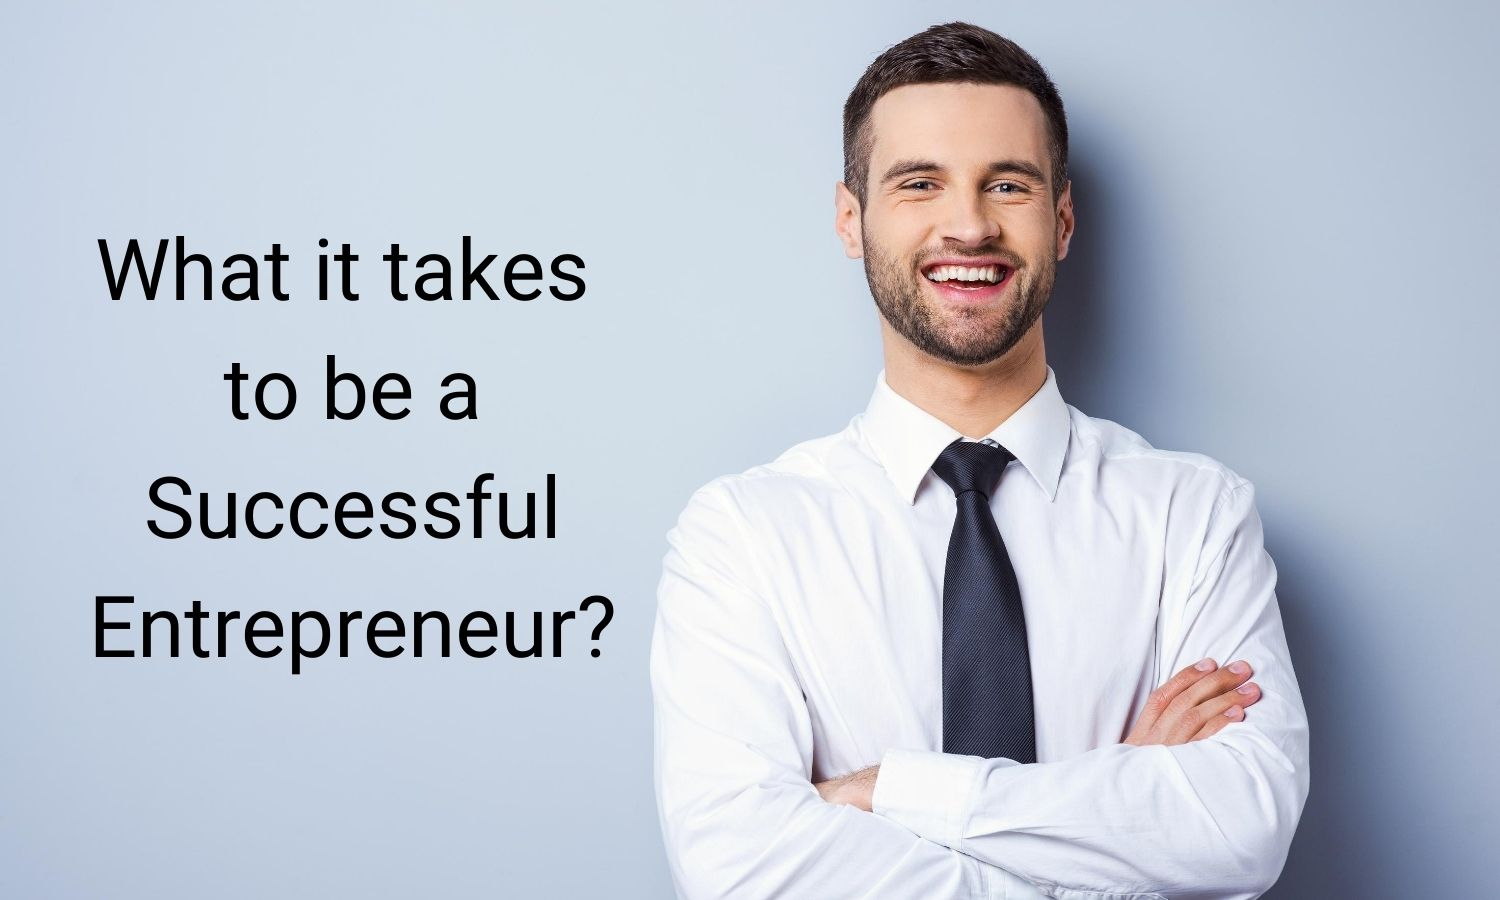 What it takes to be a Successful Entrepreneur?